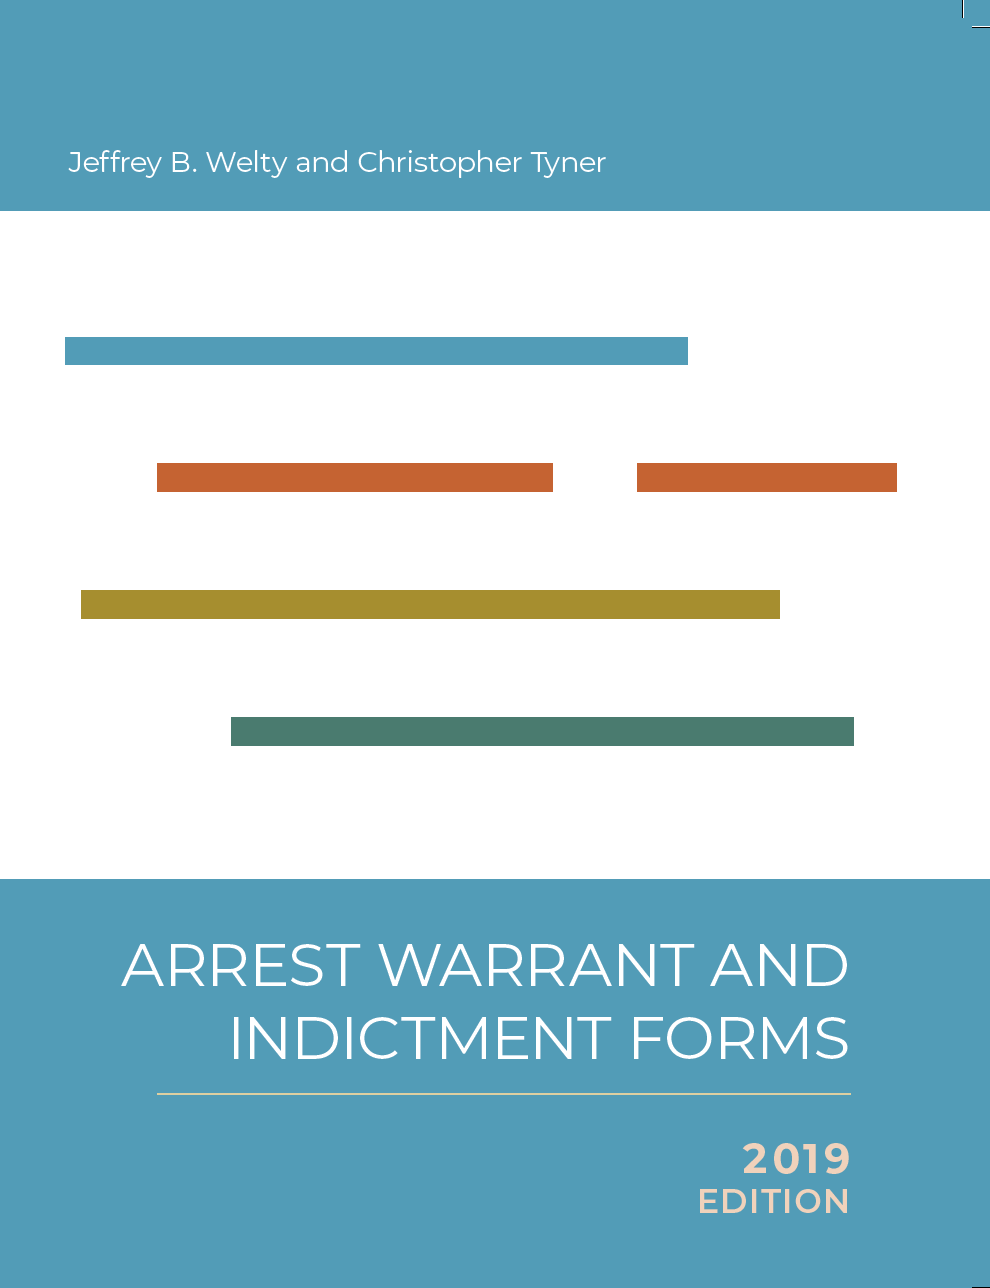 Cover of Arrest Warrant and Indictment Forms 2019